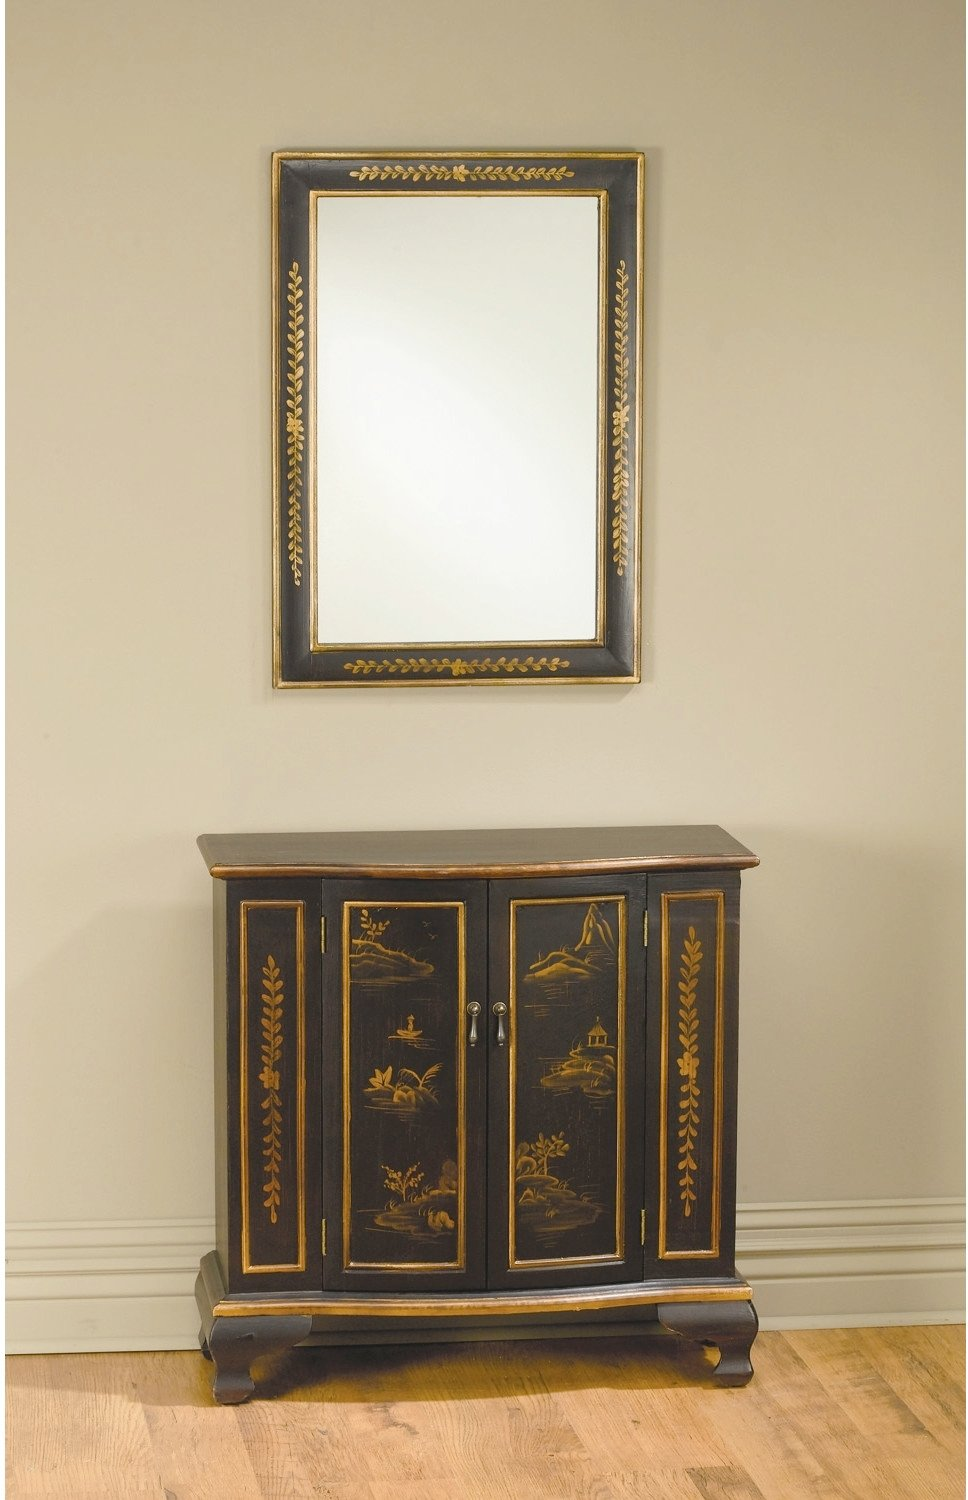 superior console table with mirror this oriental design set will give unique style your living room foyer entryway hallway the accent cabinet has and baby changer pottery barn